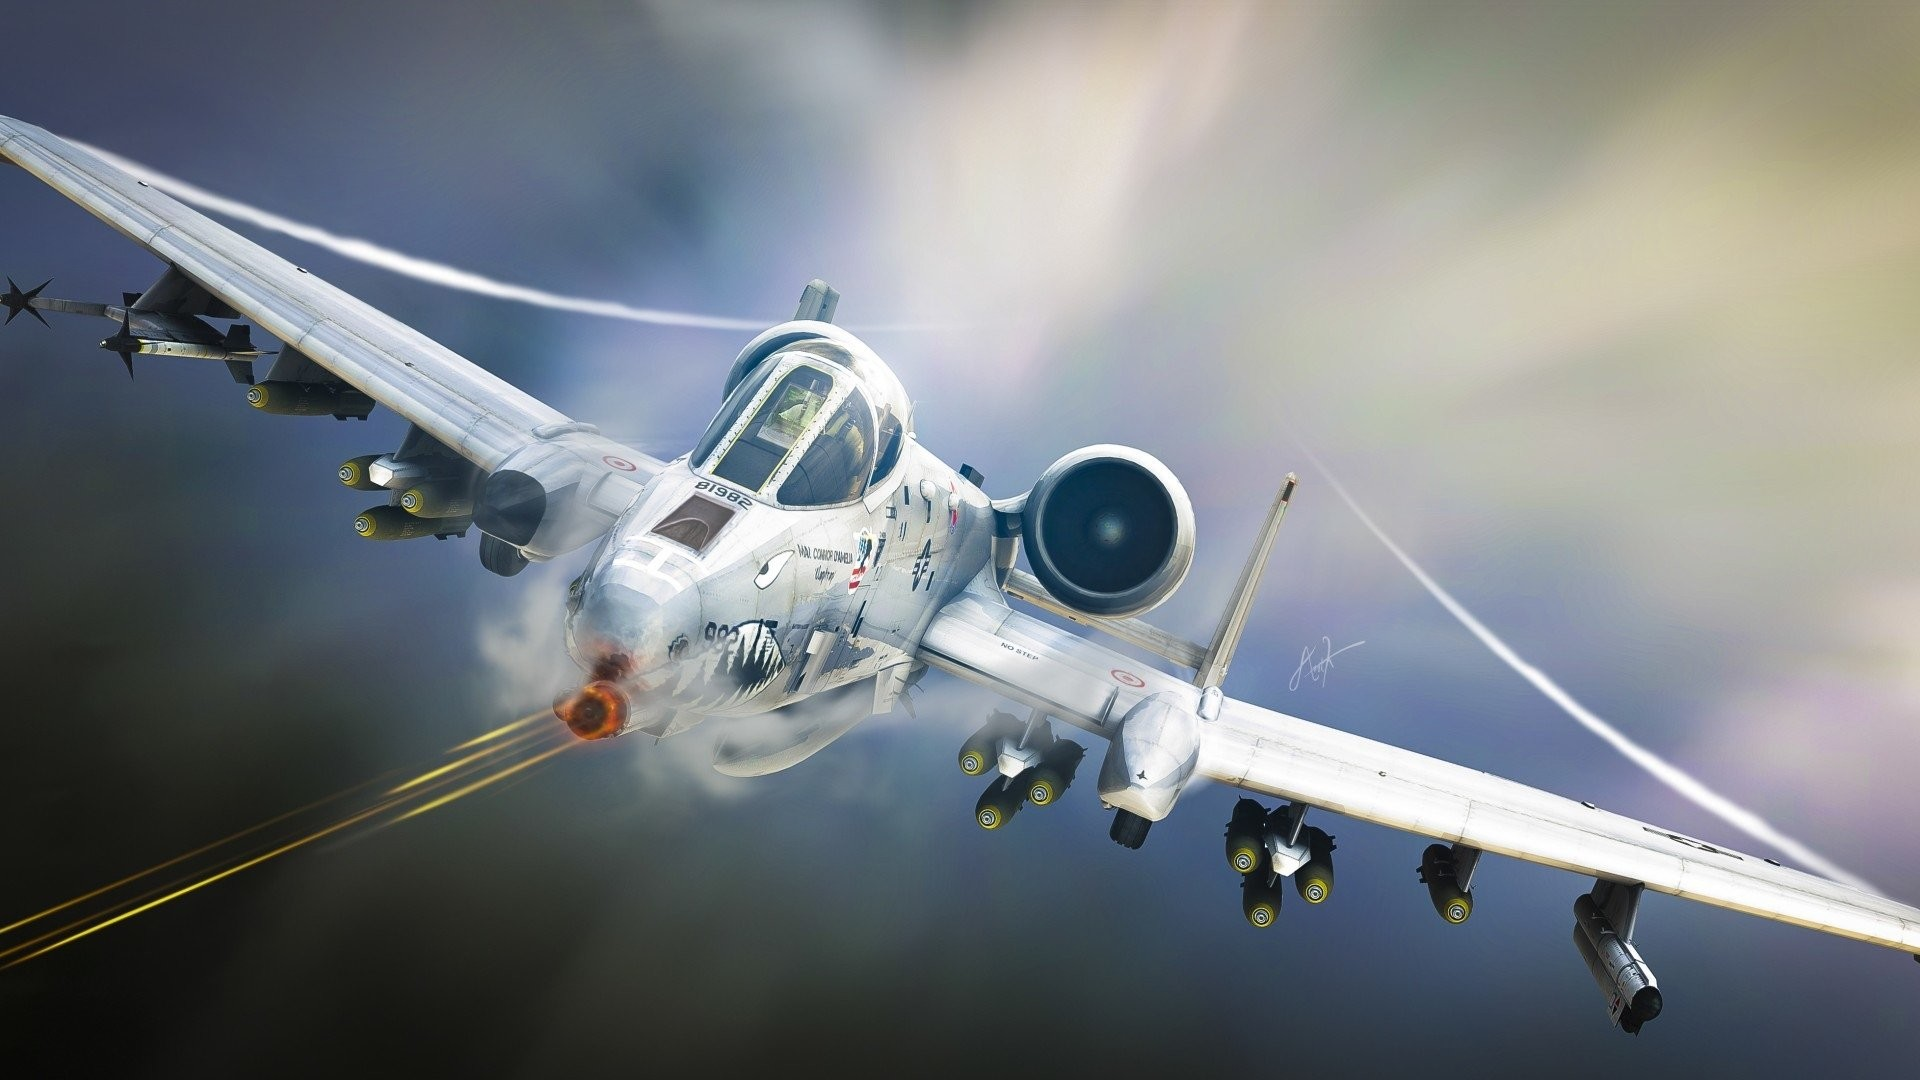 A10 Warthog Wallpaper (74+ images)